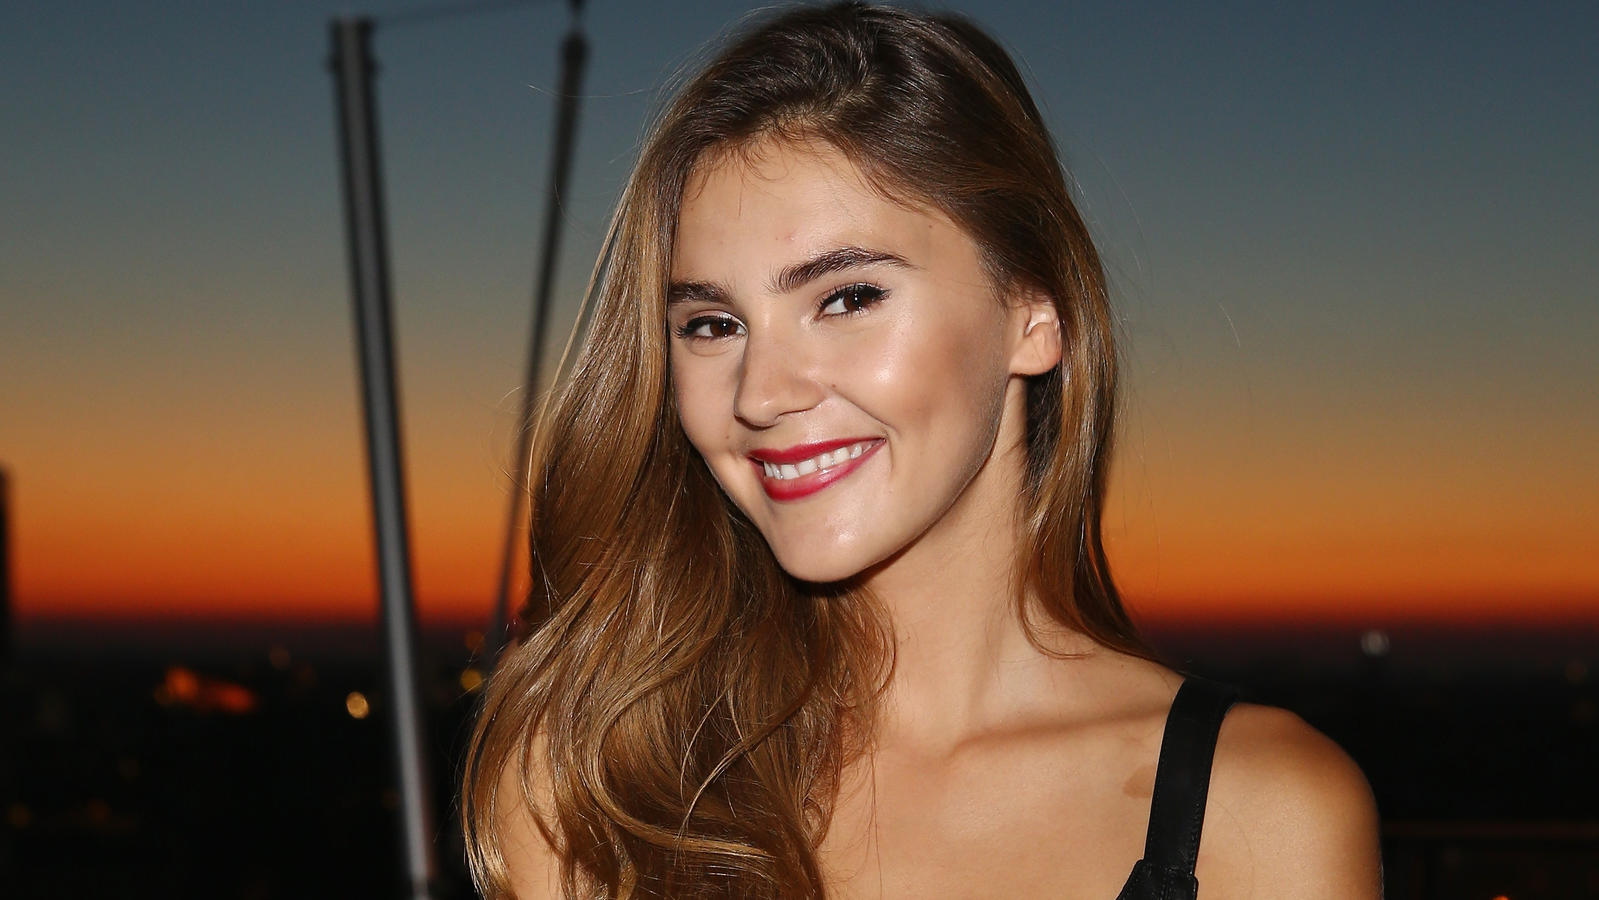 Stefanie Giesinger attends the